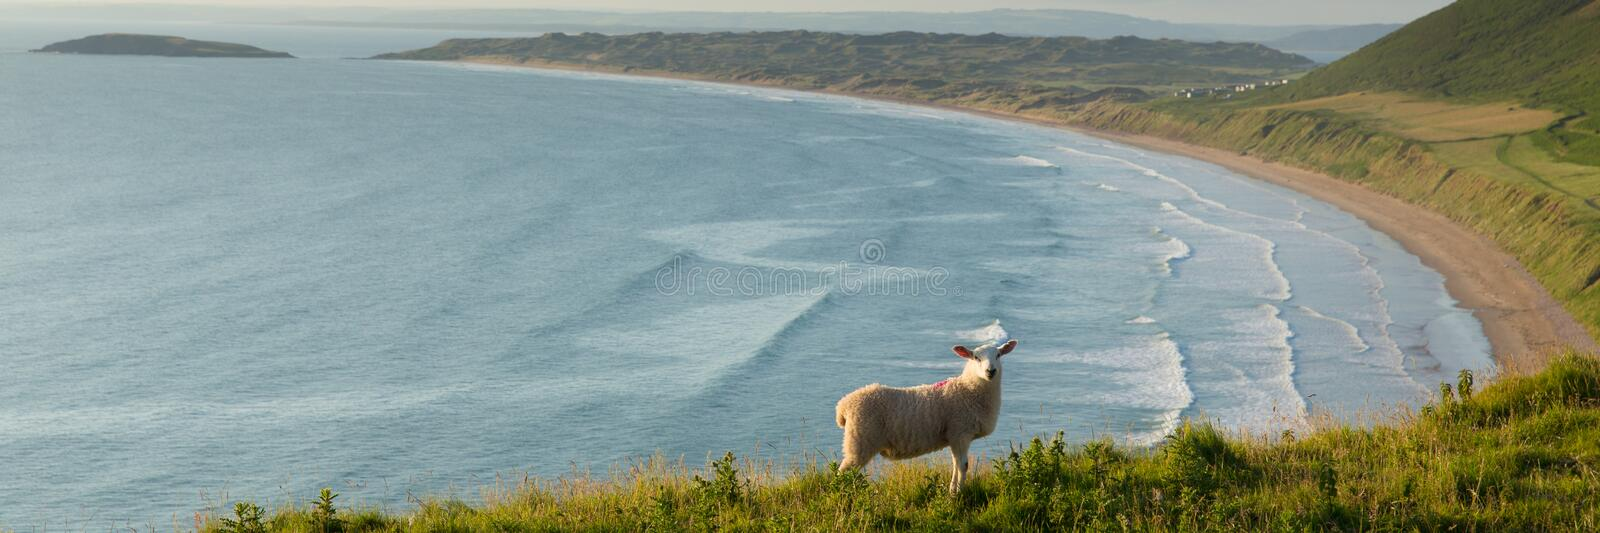 Rhossili beach The Gower peninsula South Wales UK with sheep panorama royalty free stock photo